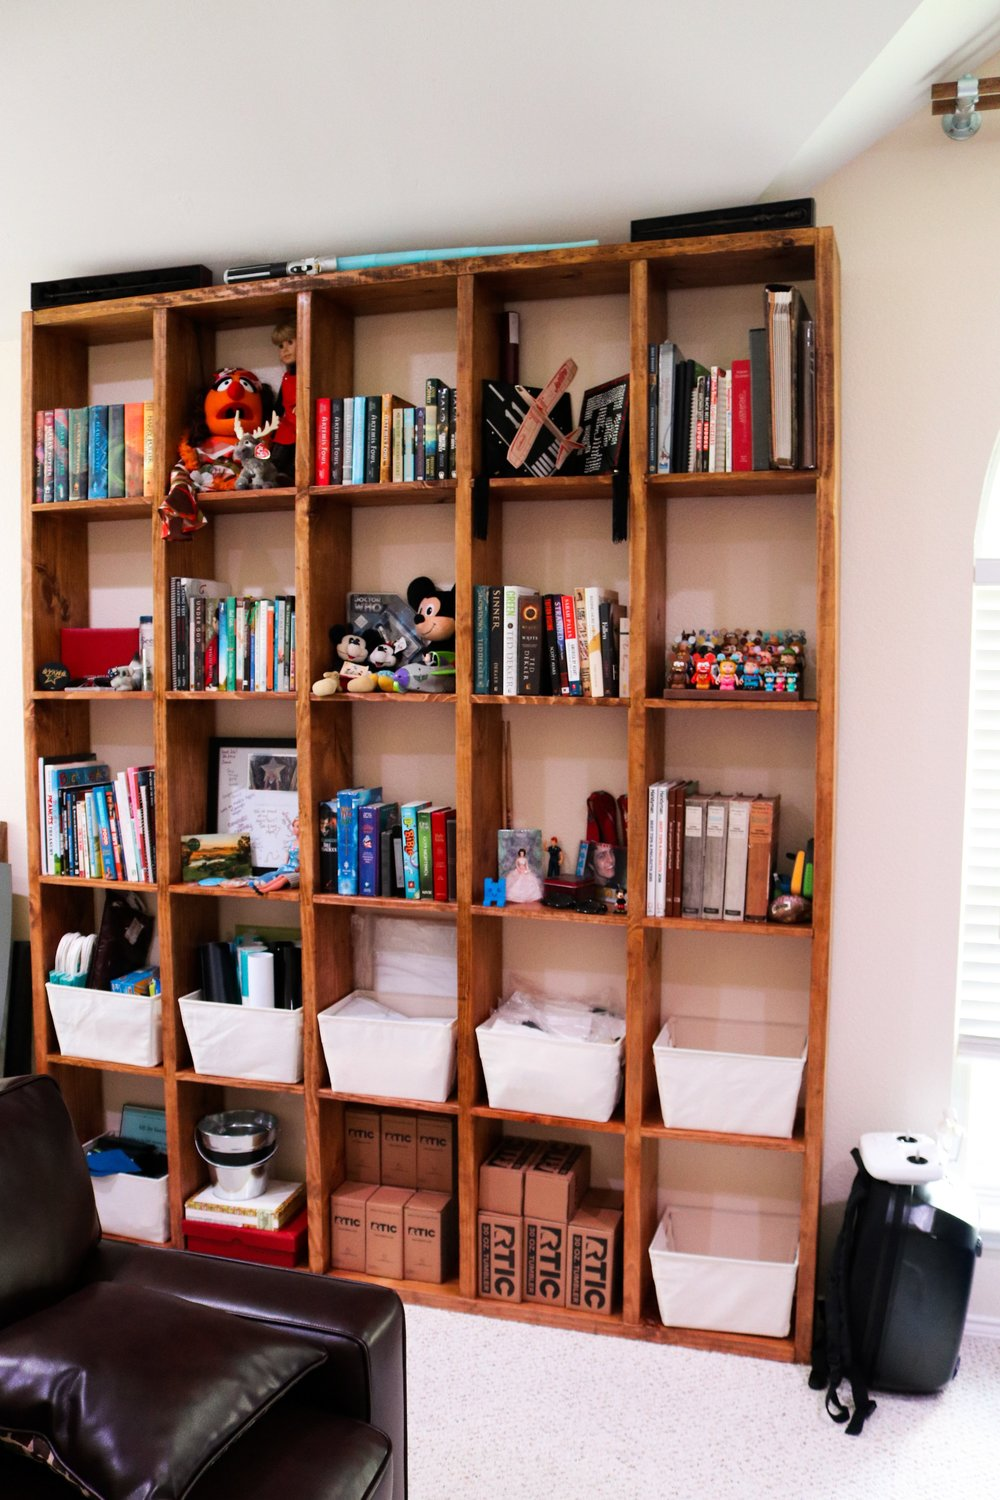 The Bookcase!